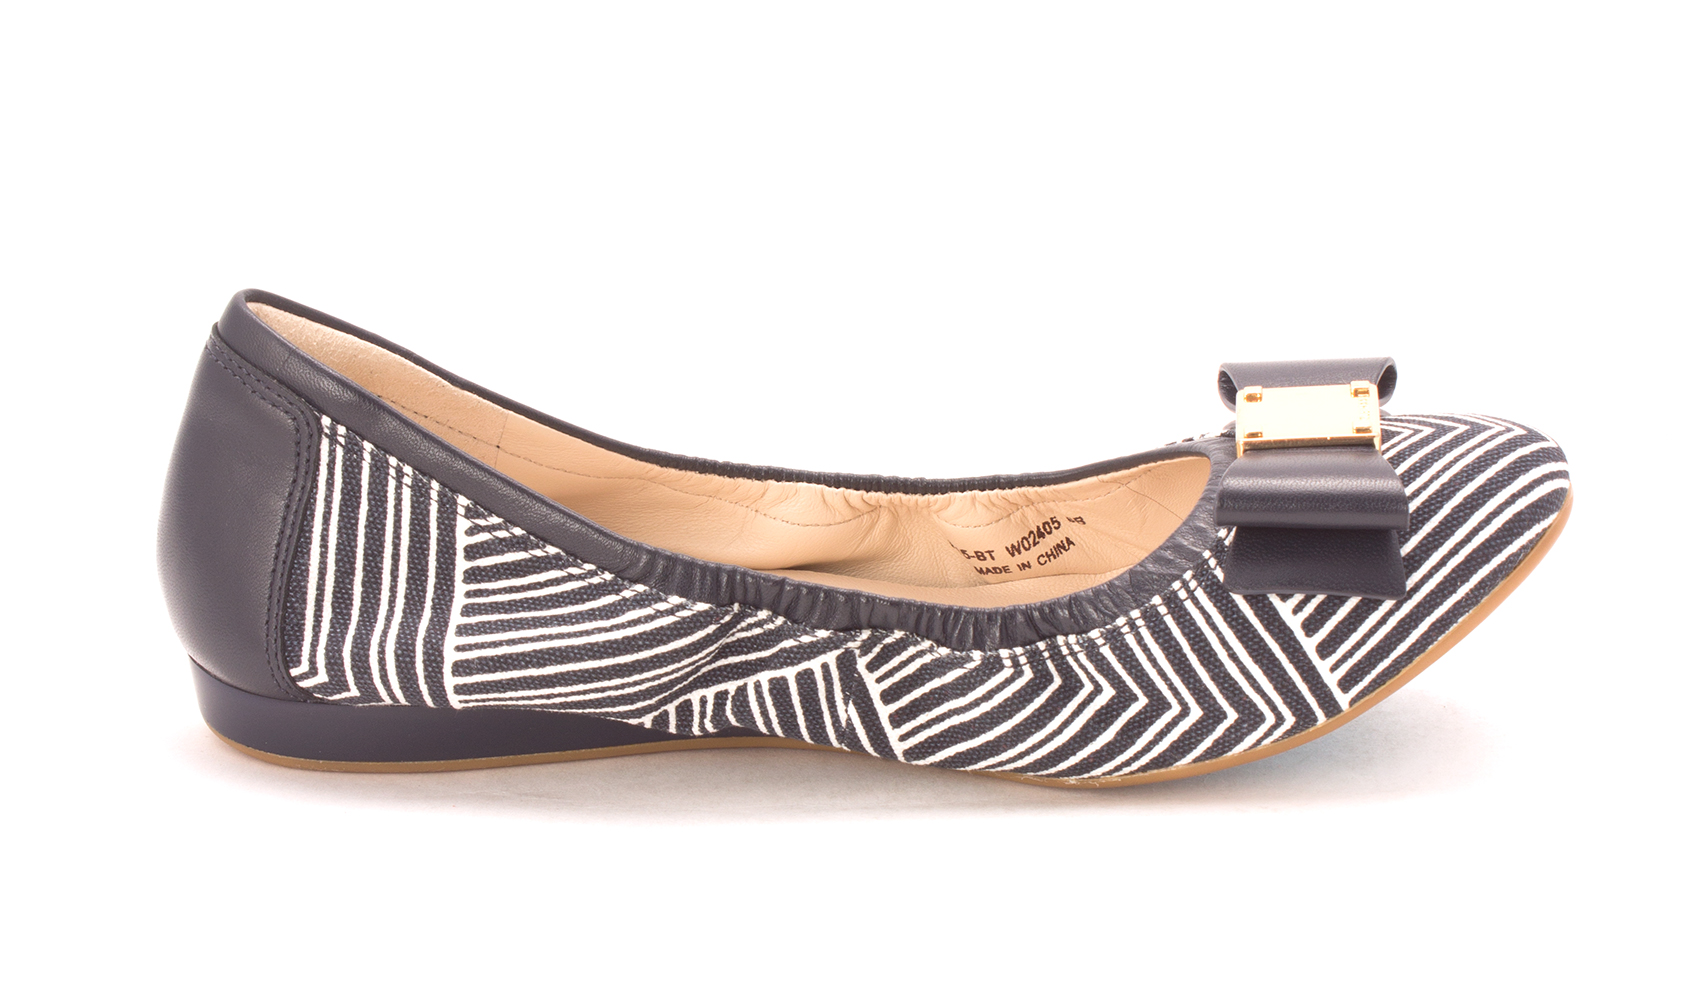 Cole Haan Womens CH1825S-2 Closed Toe Ballet Flats, Ink/Optic White, Size 6.0